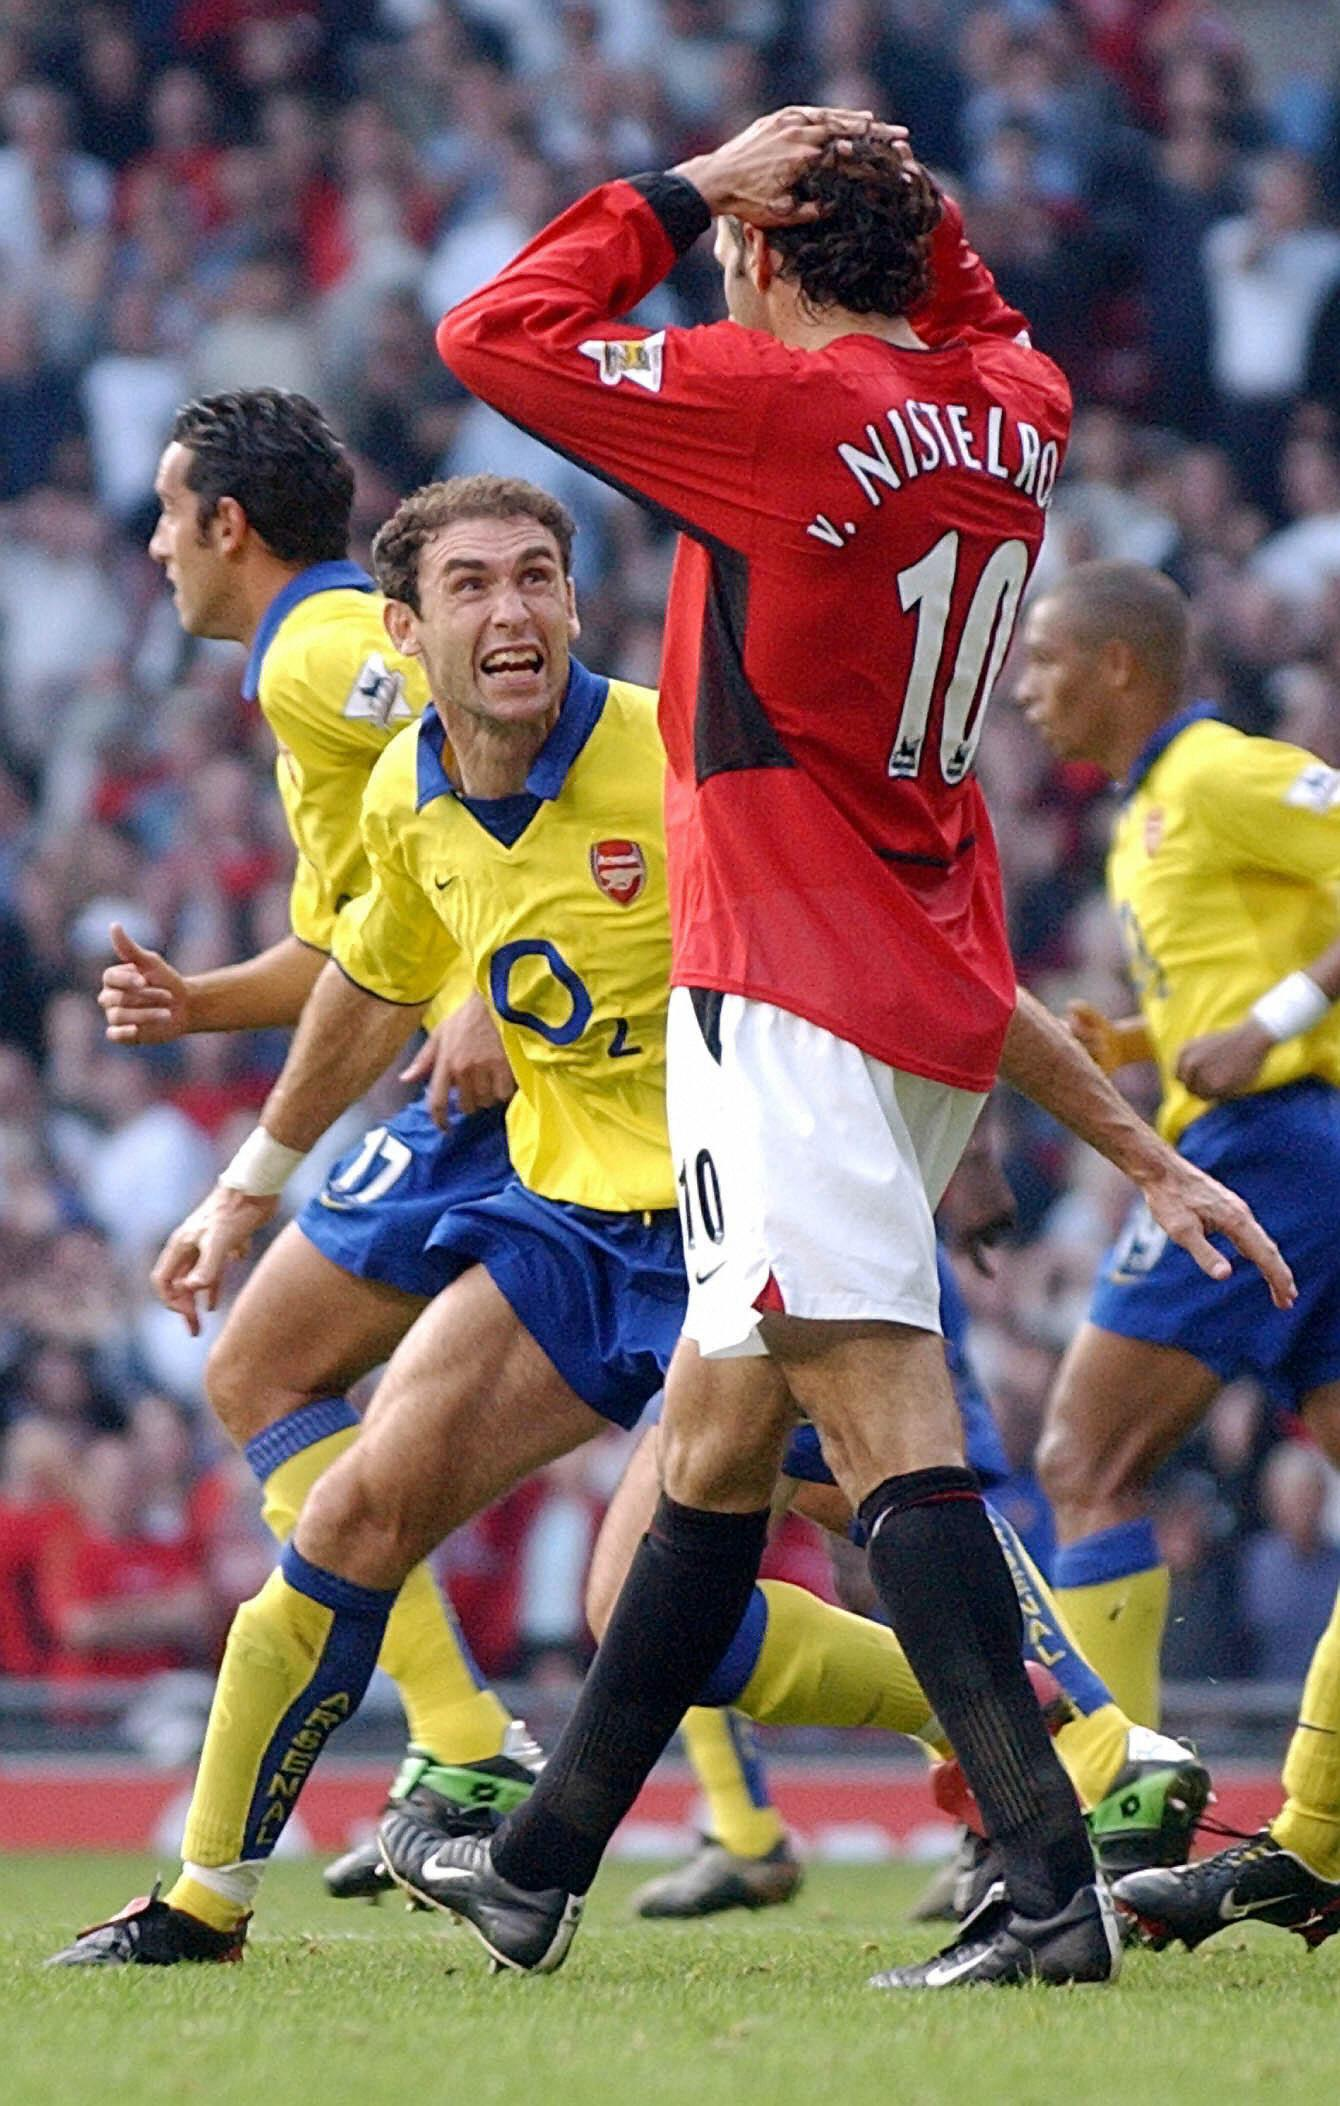 After United striker Ruud van Nistelrooy missed a penatly Martin Keown ran over to confront him